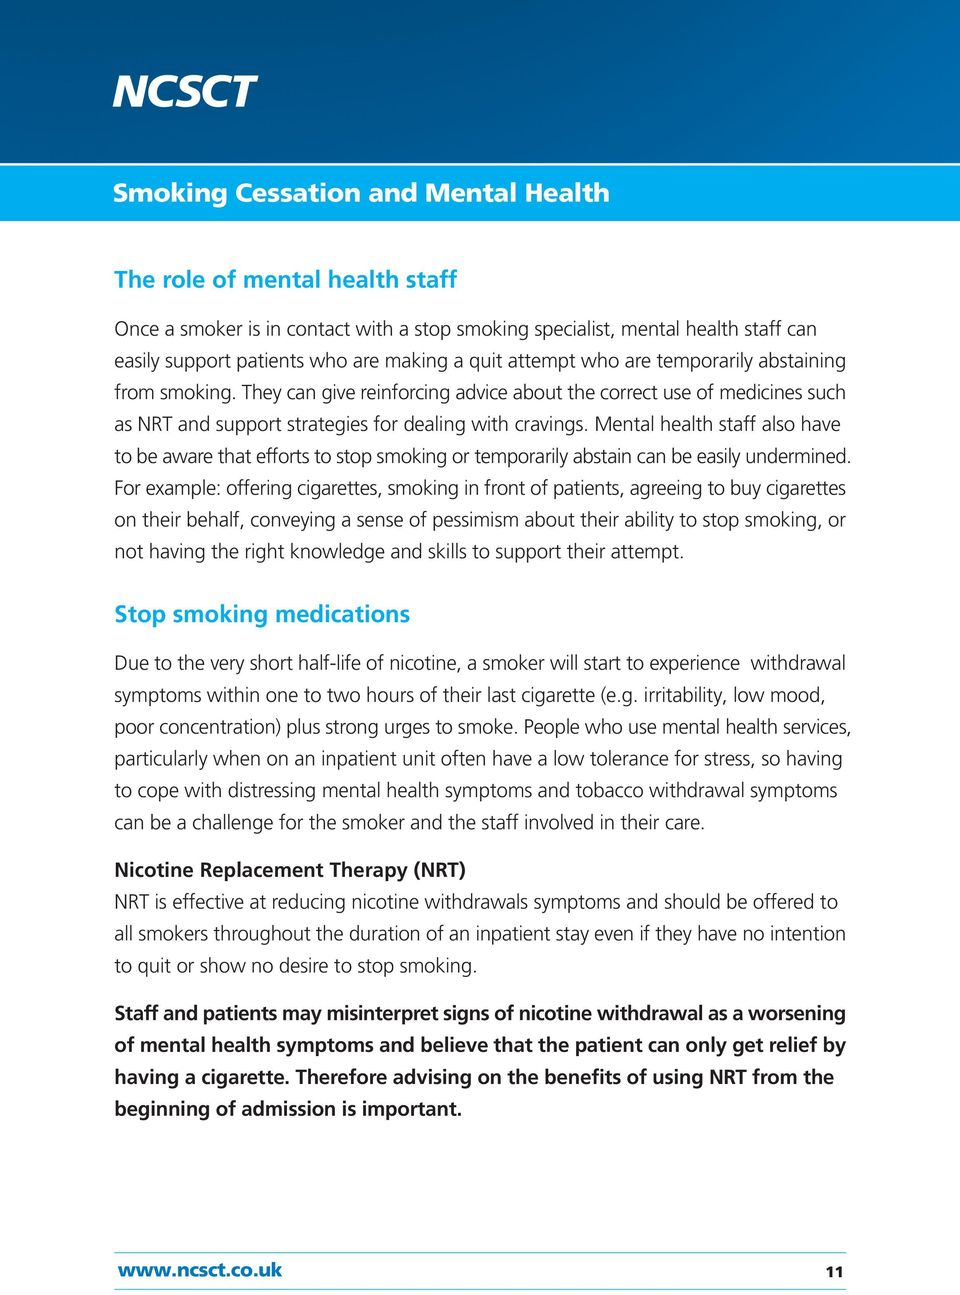 Mental health staff also have to be aware that efforts to stop smoking or temporarily abstain can be easily undermined.